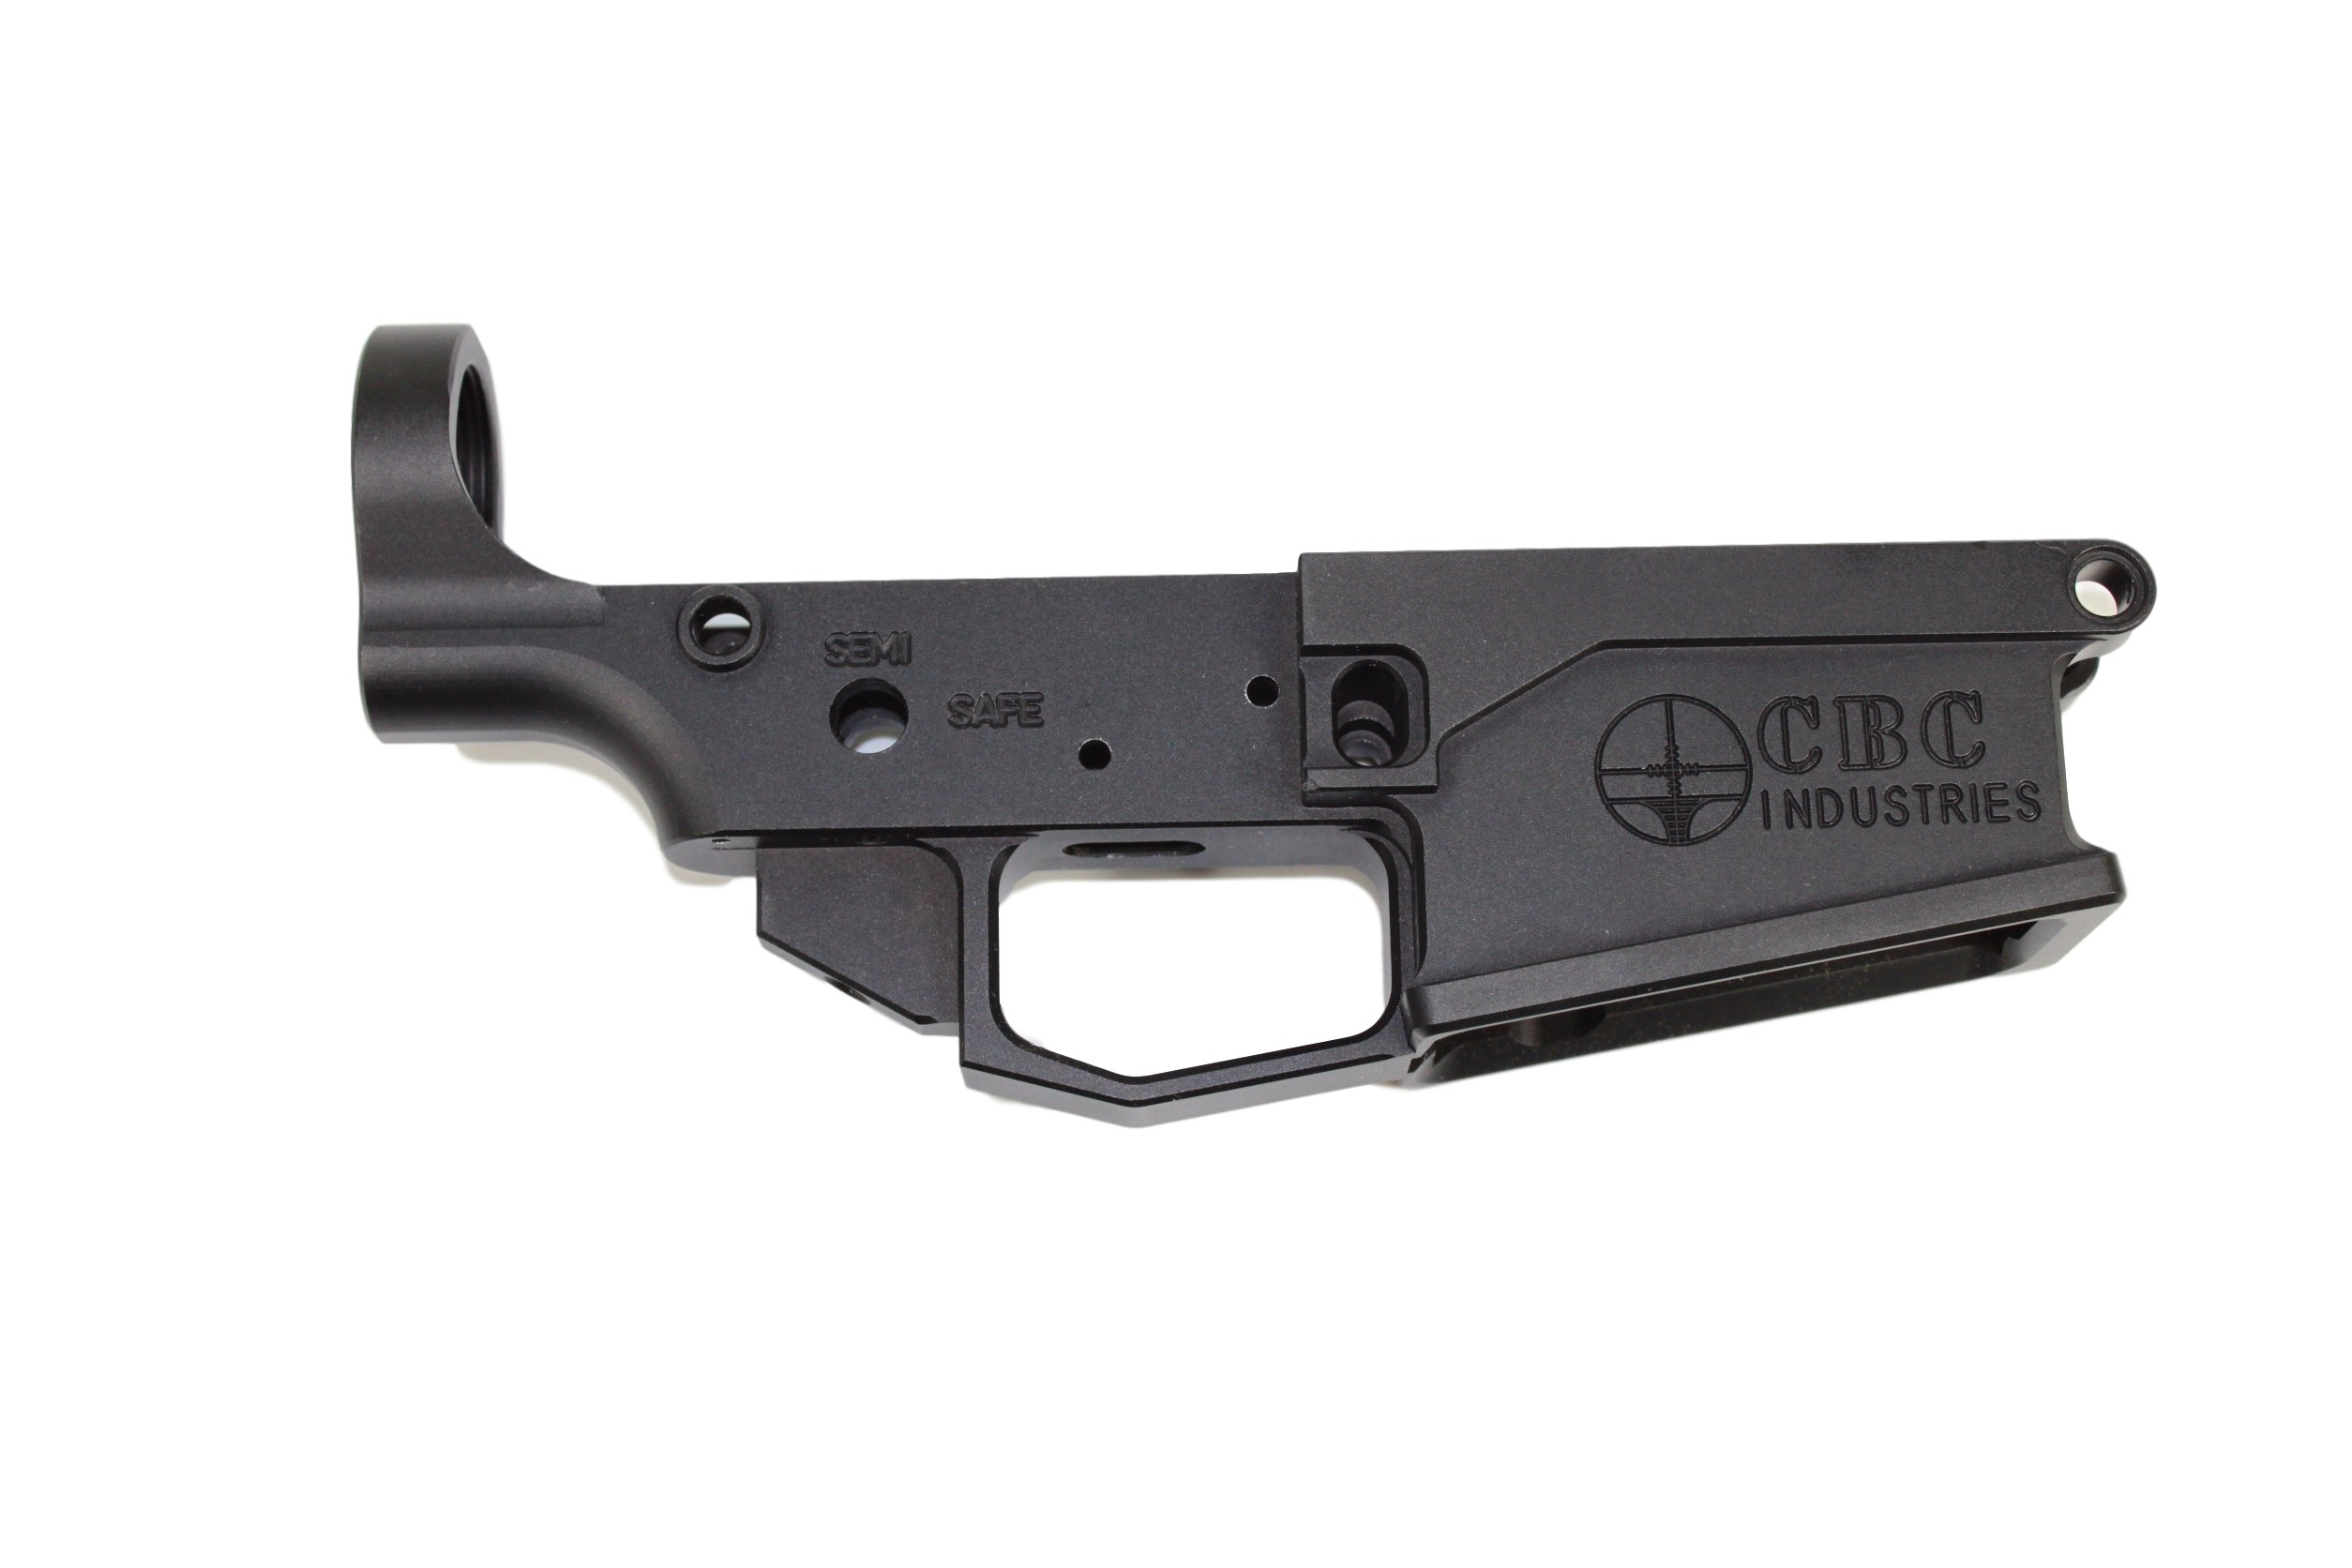 ar 15 308 cbc lower